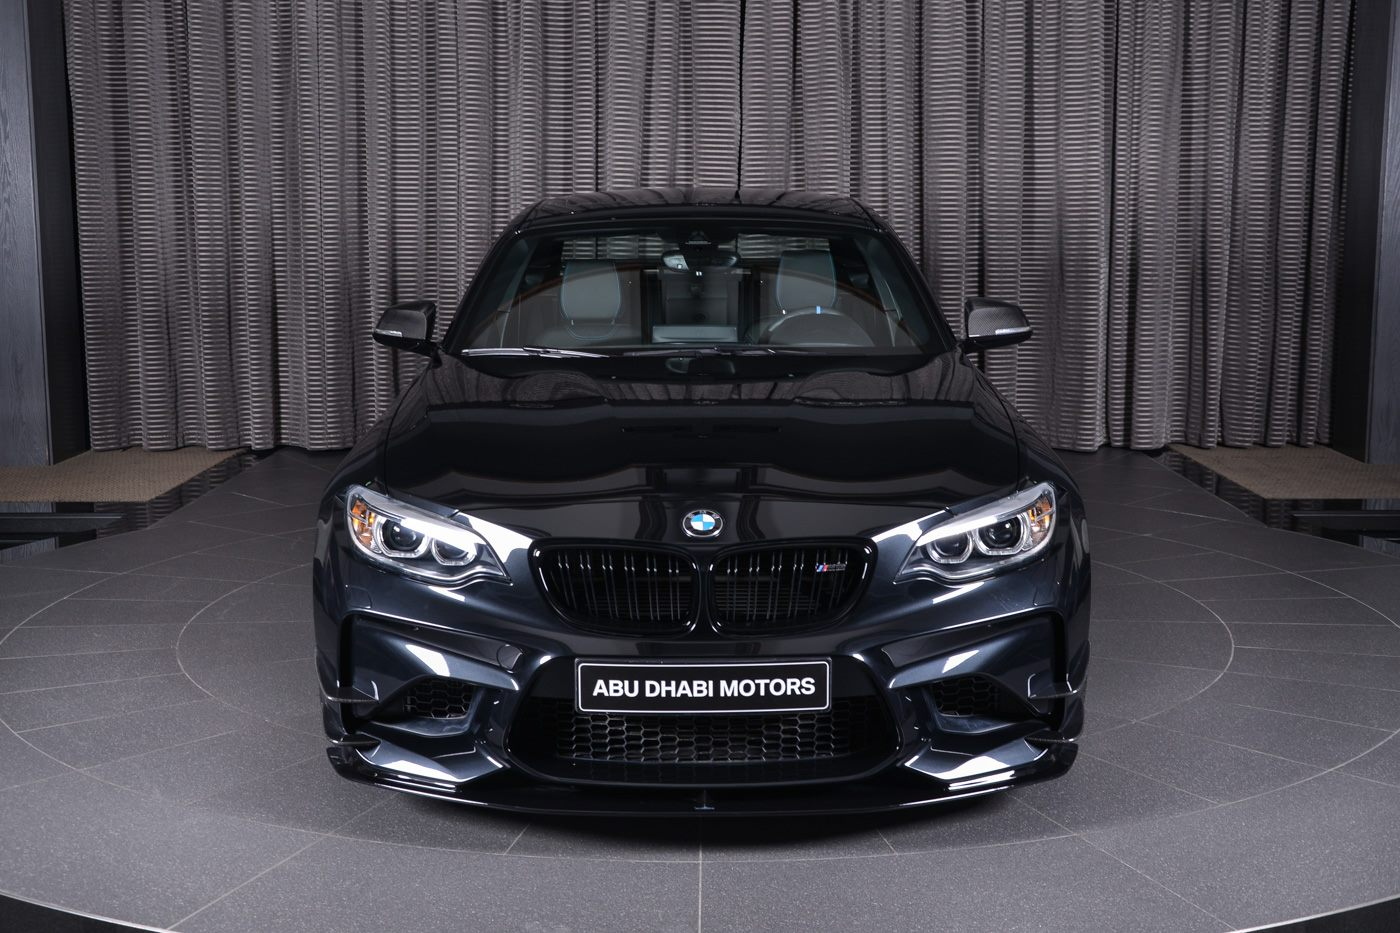 Sapphire Black Bmw M2 Is All In On What Ac Schnitzer Is